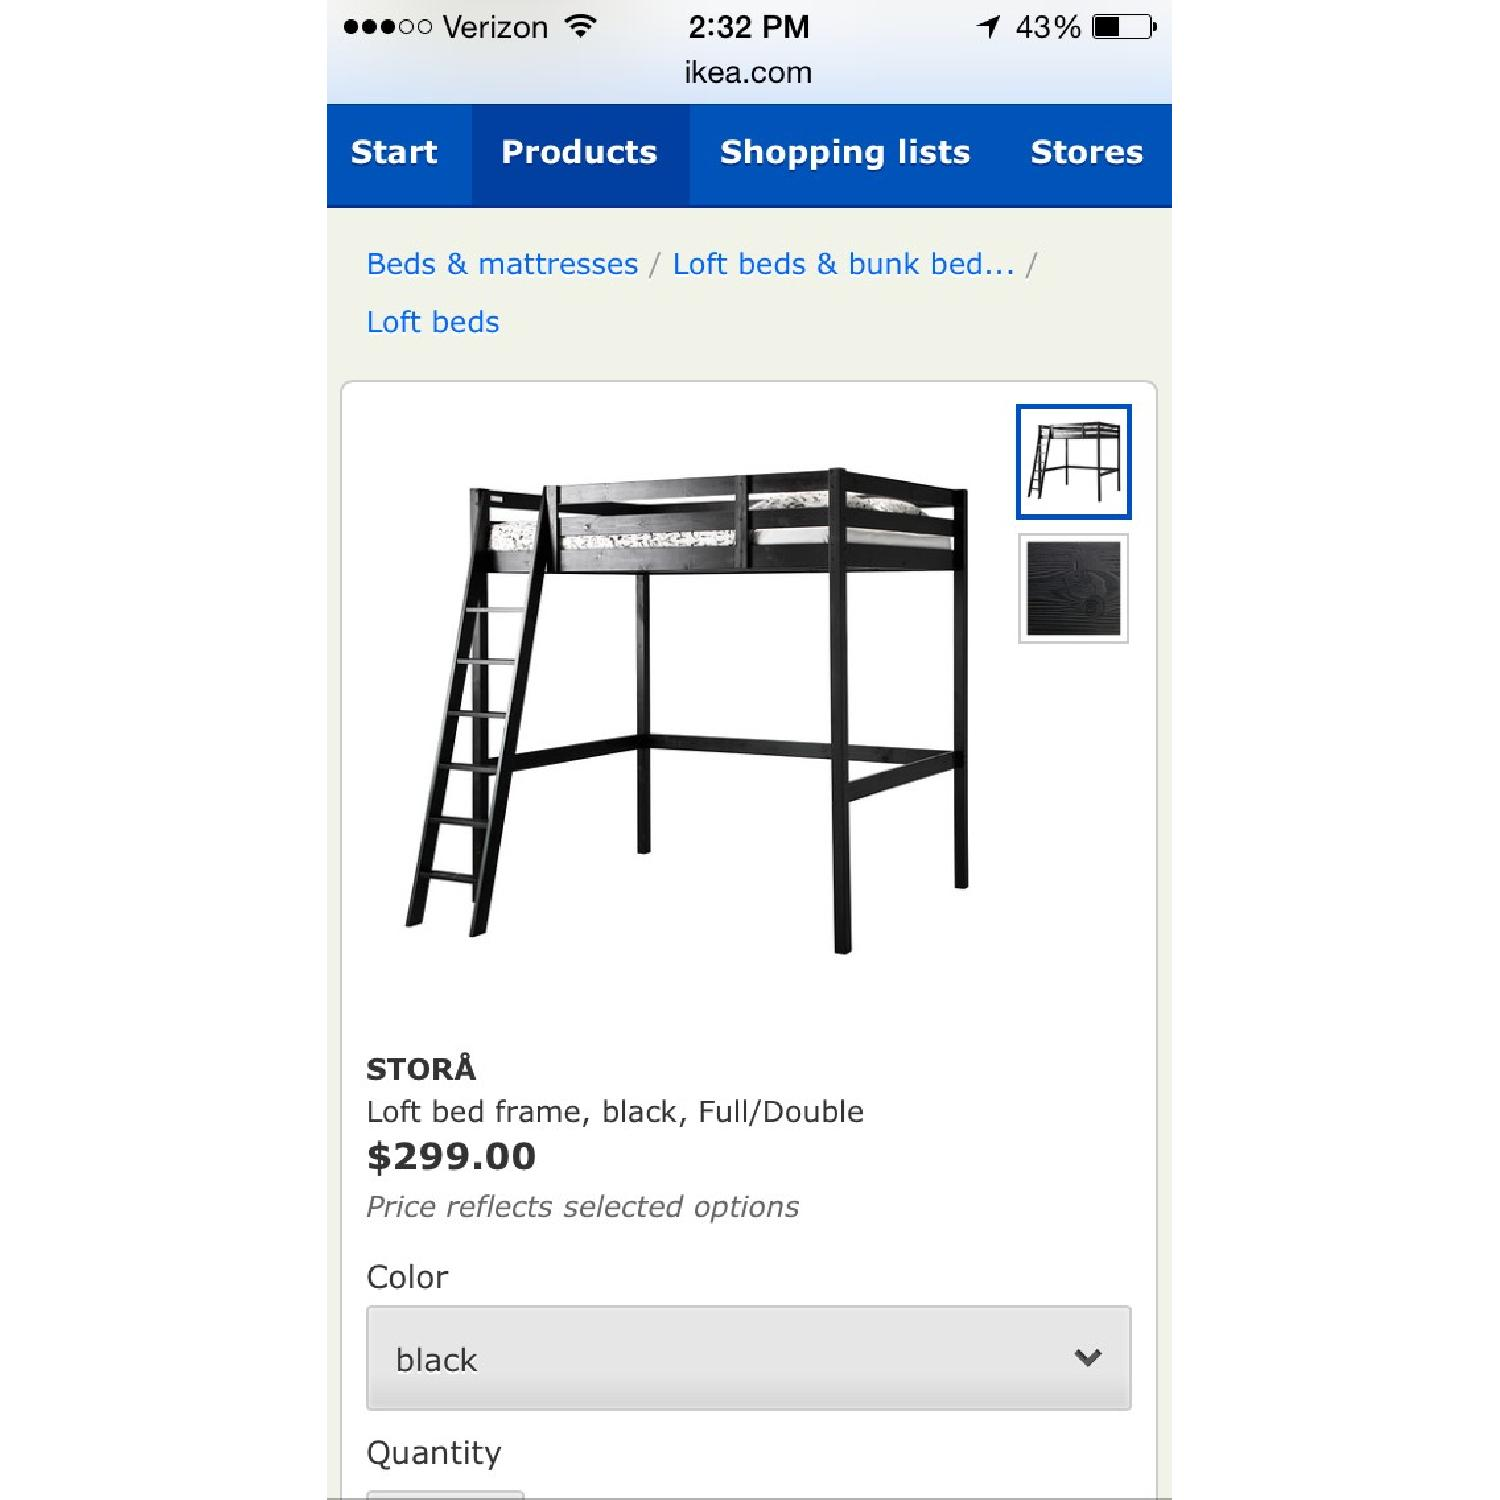 ikea stora full double loft bed frame 0